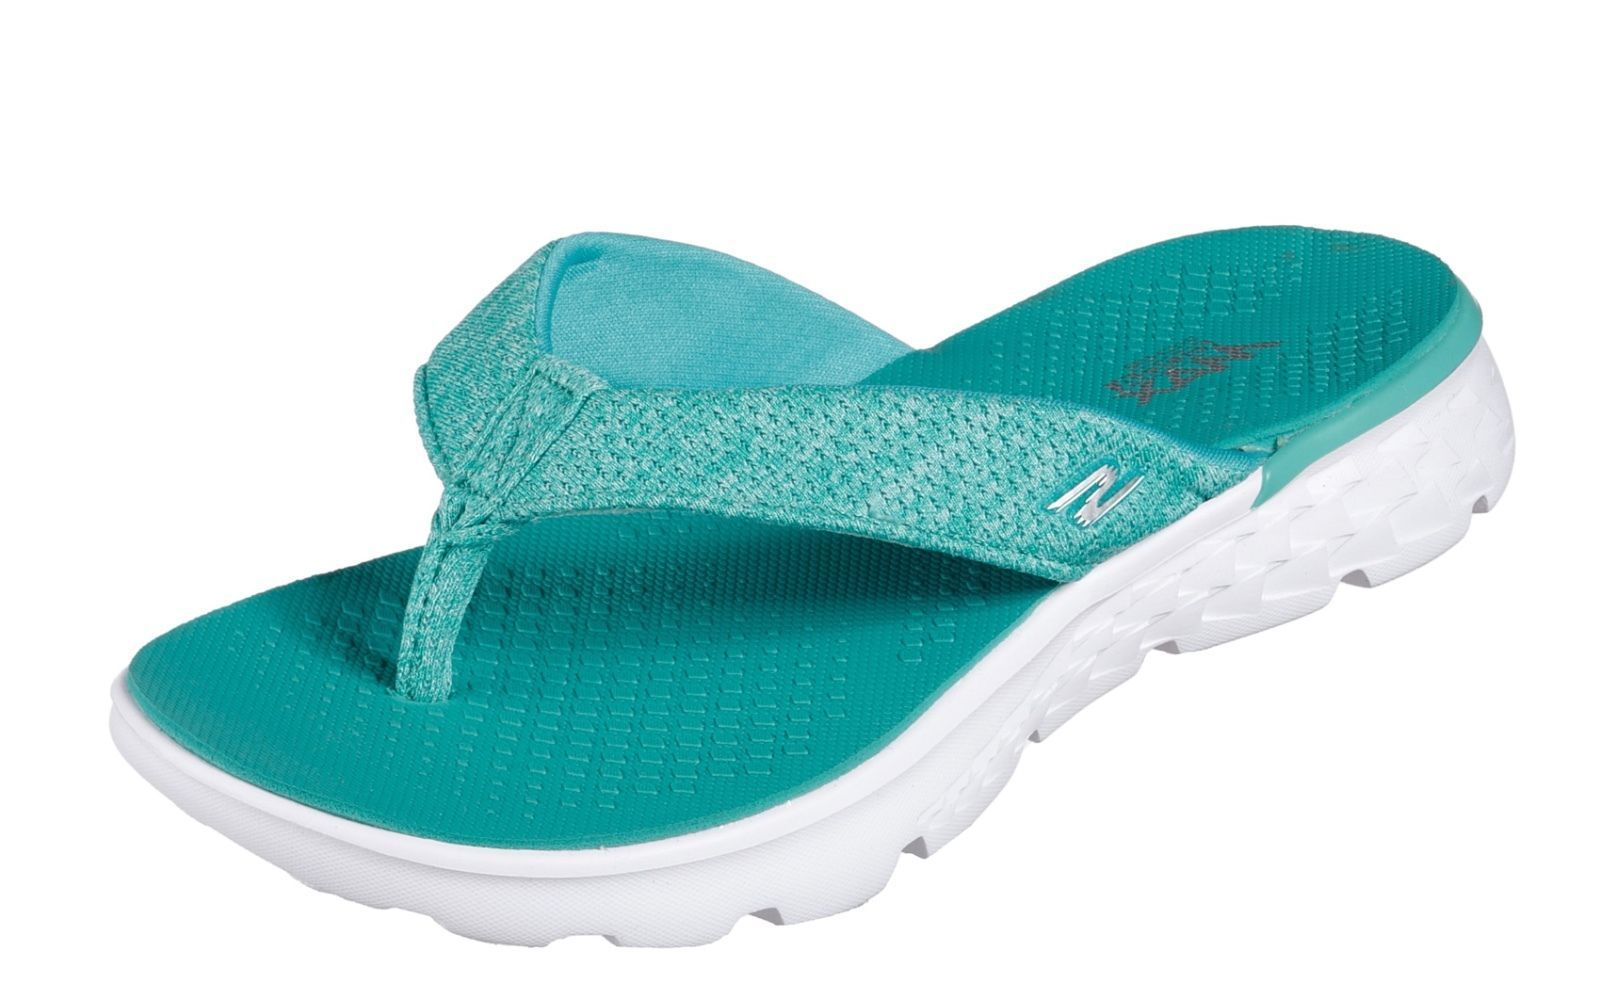 b2c3eb49956d Skechers NEW On The Go 400 Vivacity teal blue womens comfort flip flops  size 3-